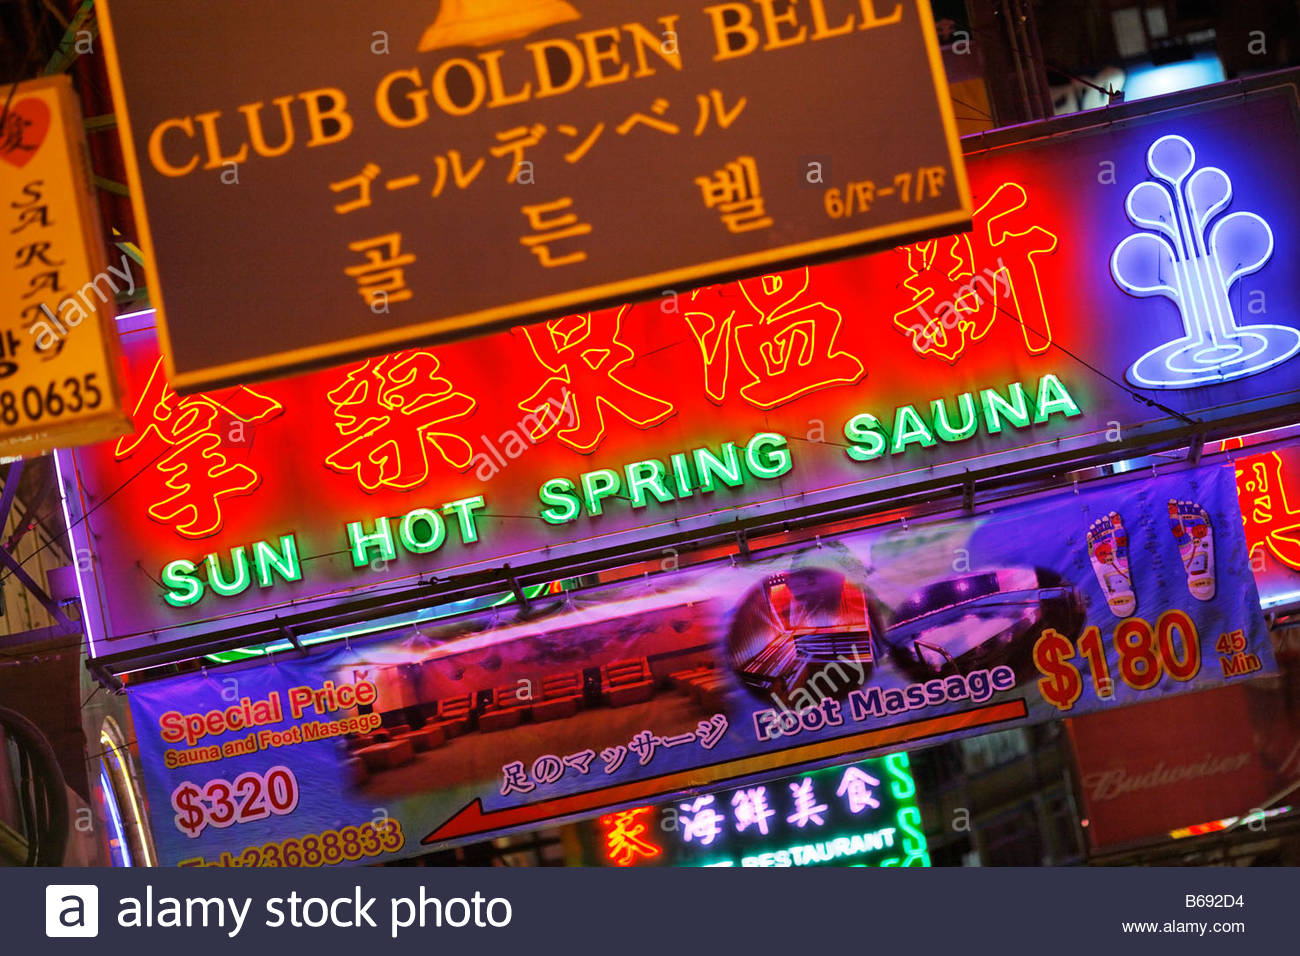 neon signs on Cameron Road, Tsim Sha Tsui, Hong Kong, China - Stock Image